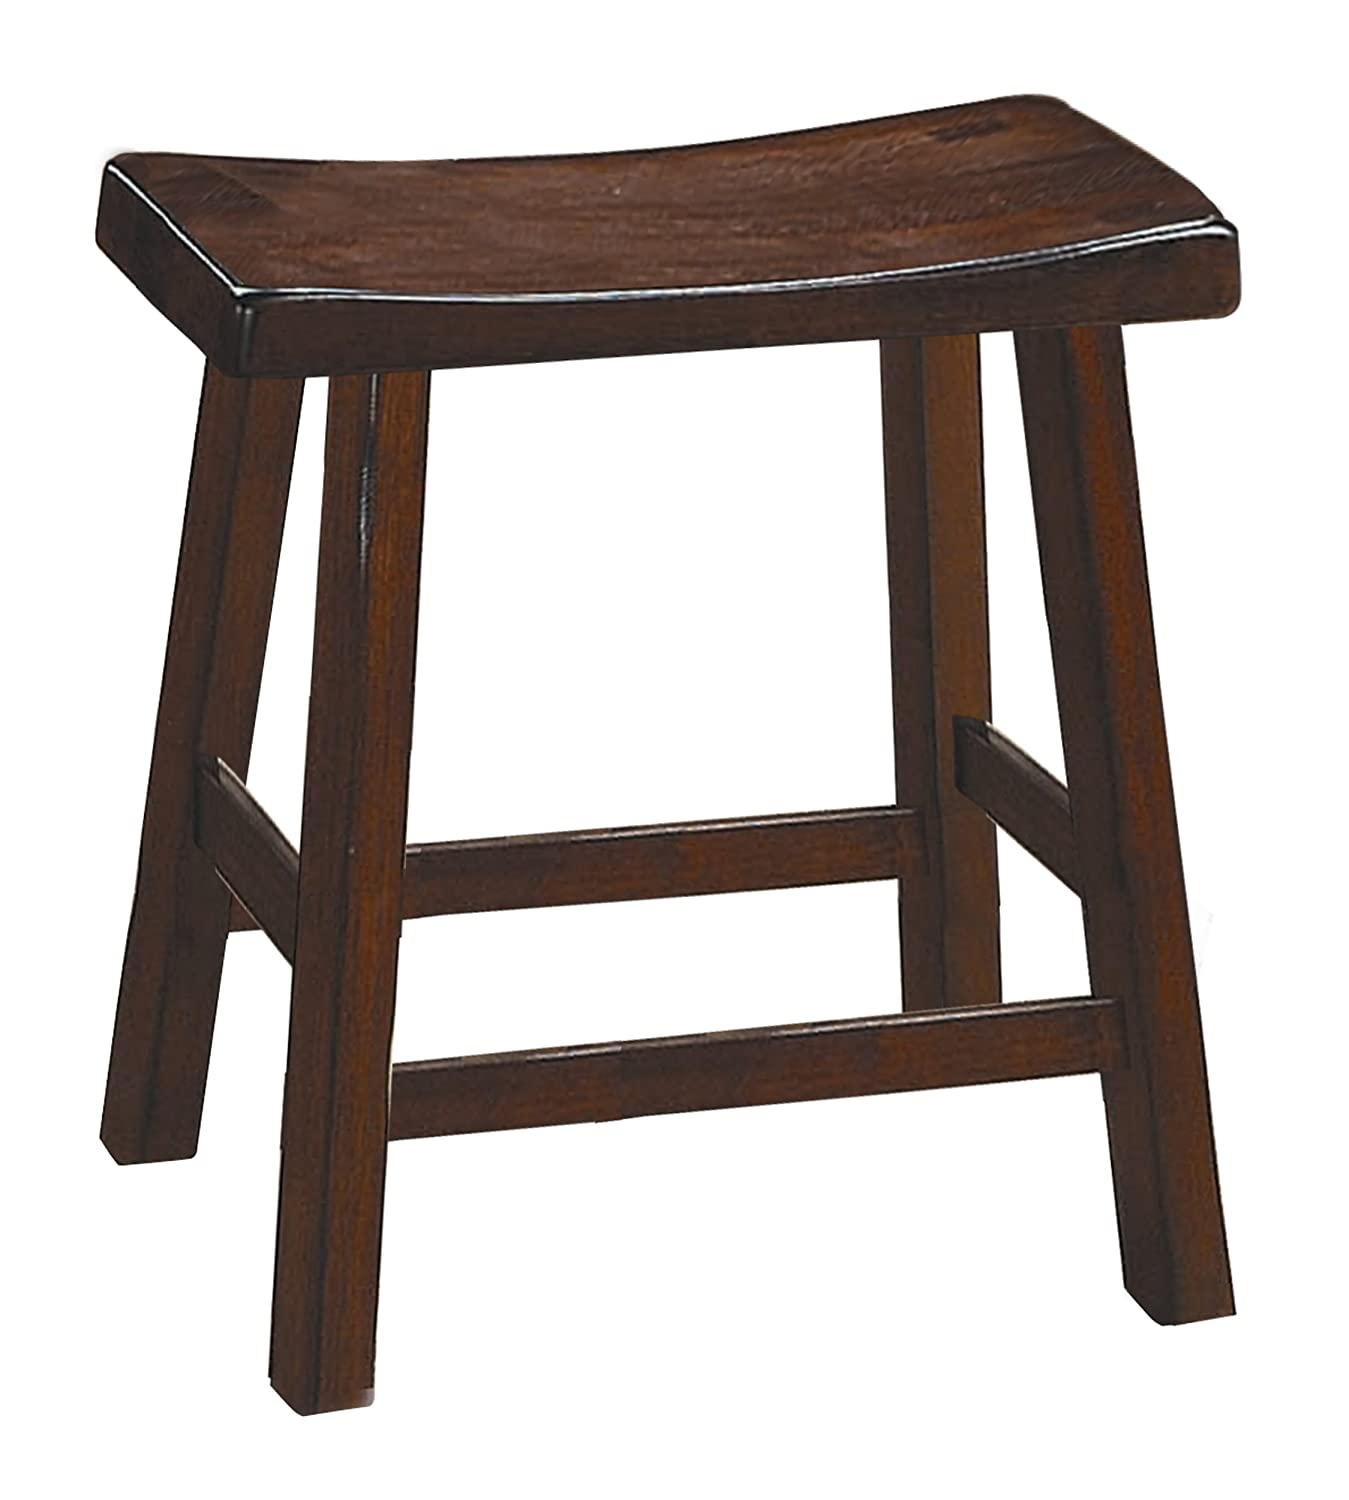 Homelegance 5302C-18 Saddleback 18-Inch Height Barstool, Cherry, Set of 2 Home Elegance - DROPSHIP